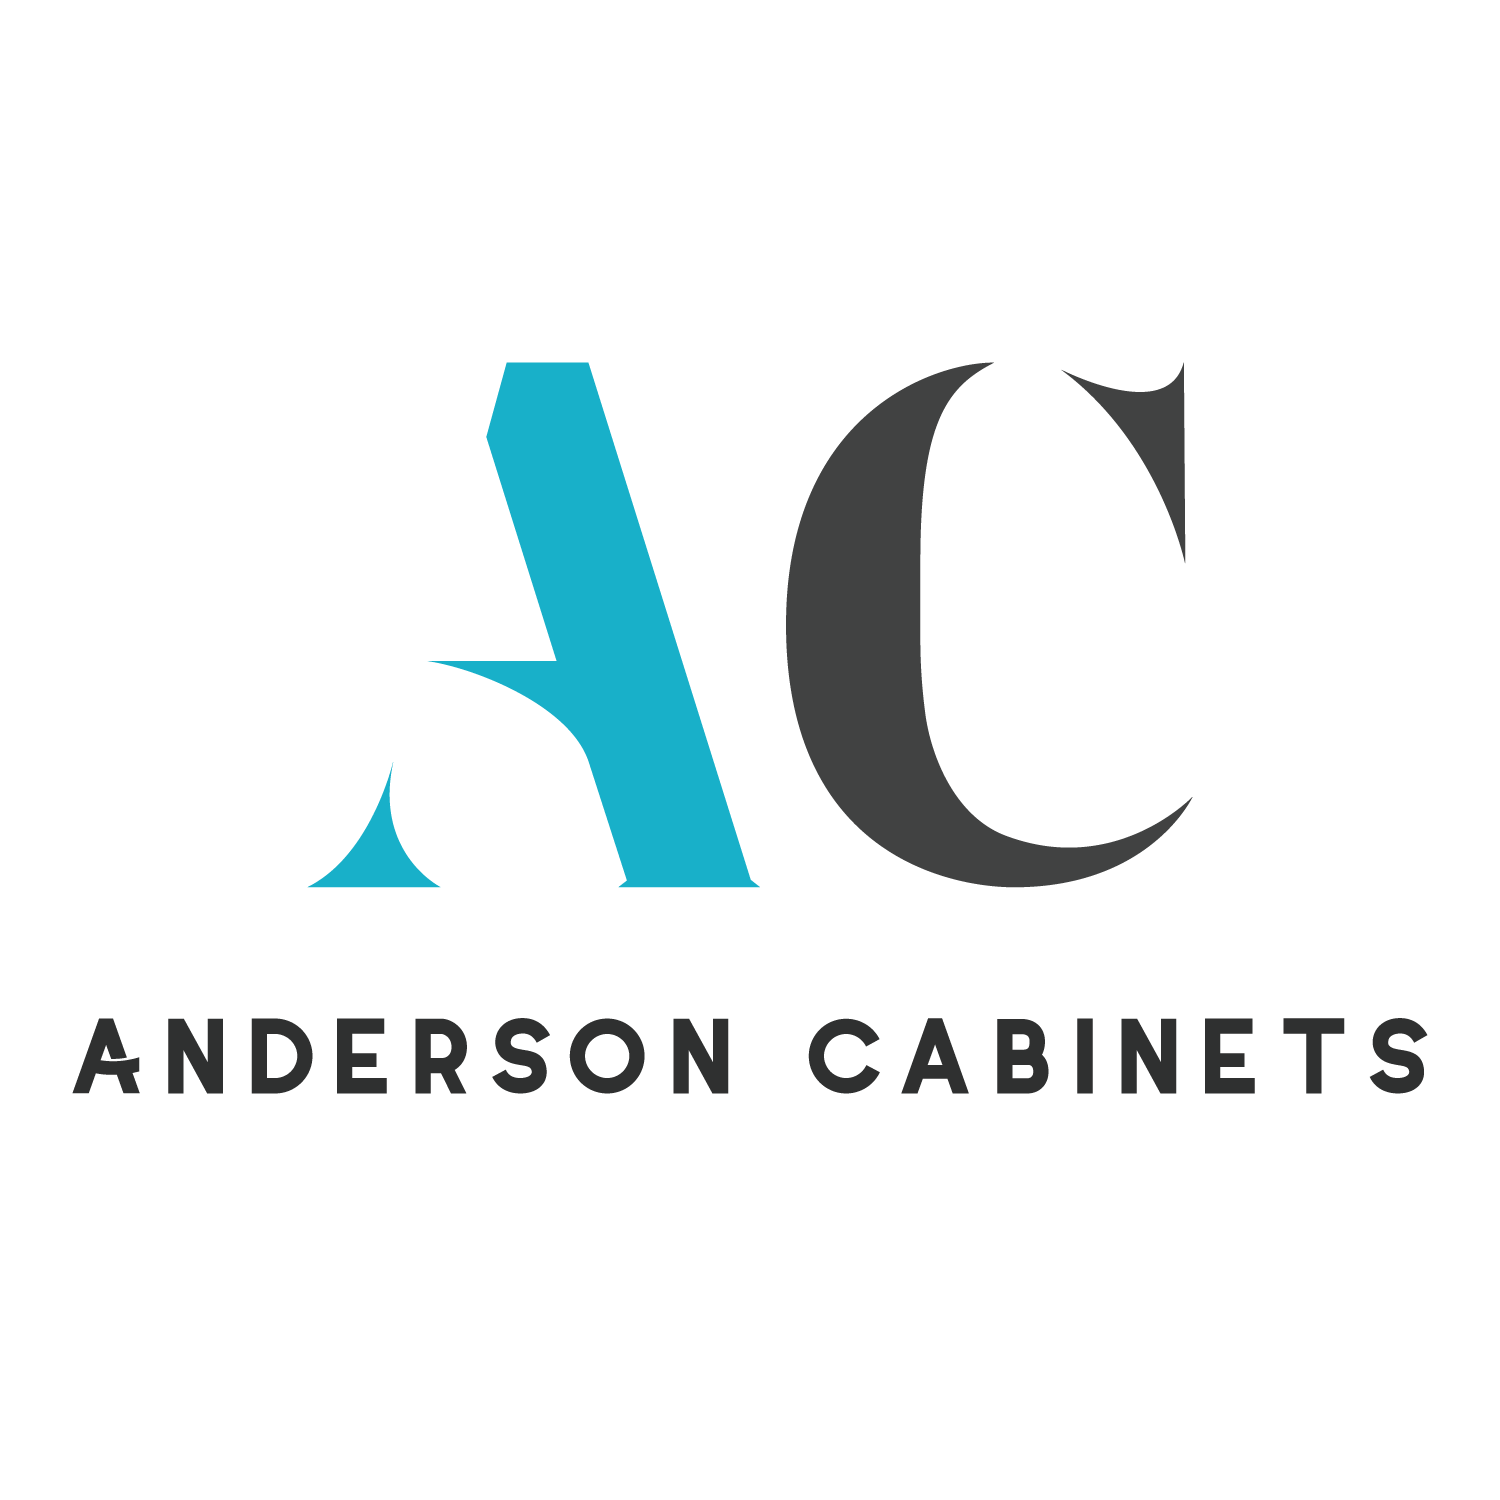 Logo Design By Nitut786 For Anderson Cabinets | Design #17160205